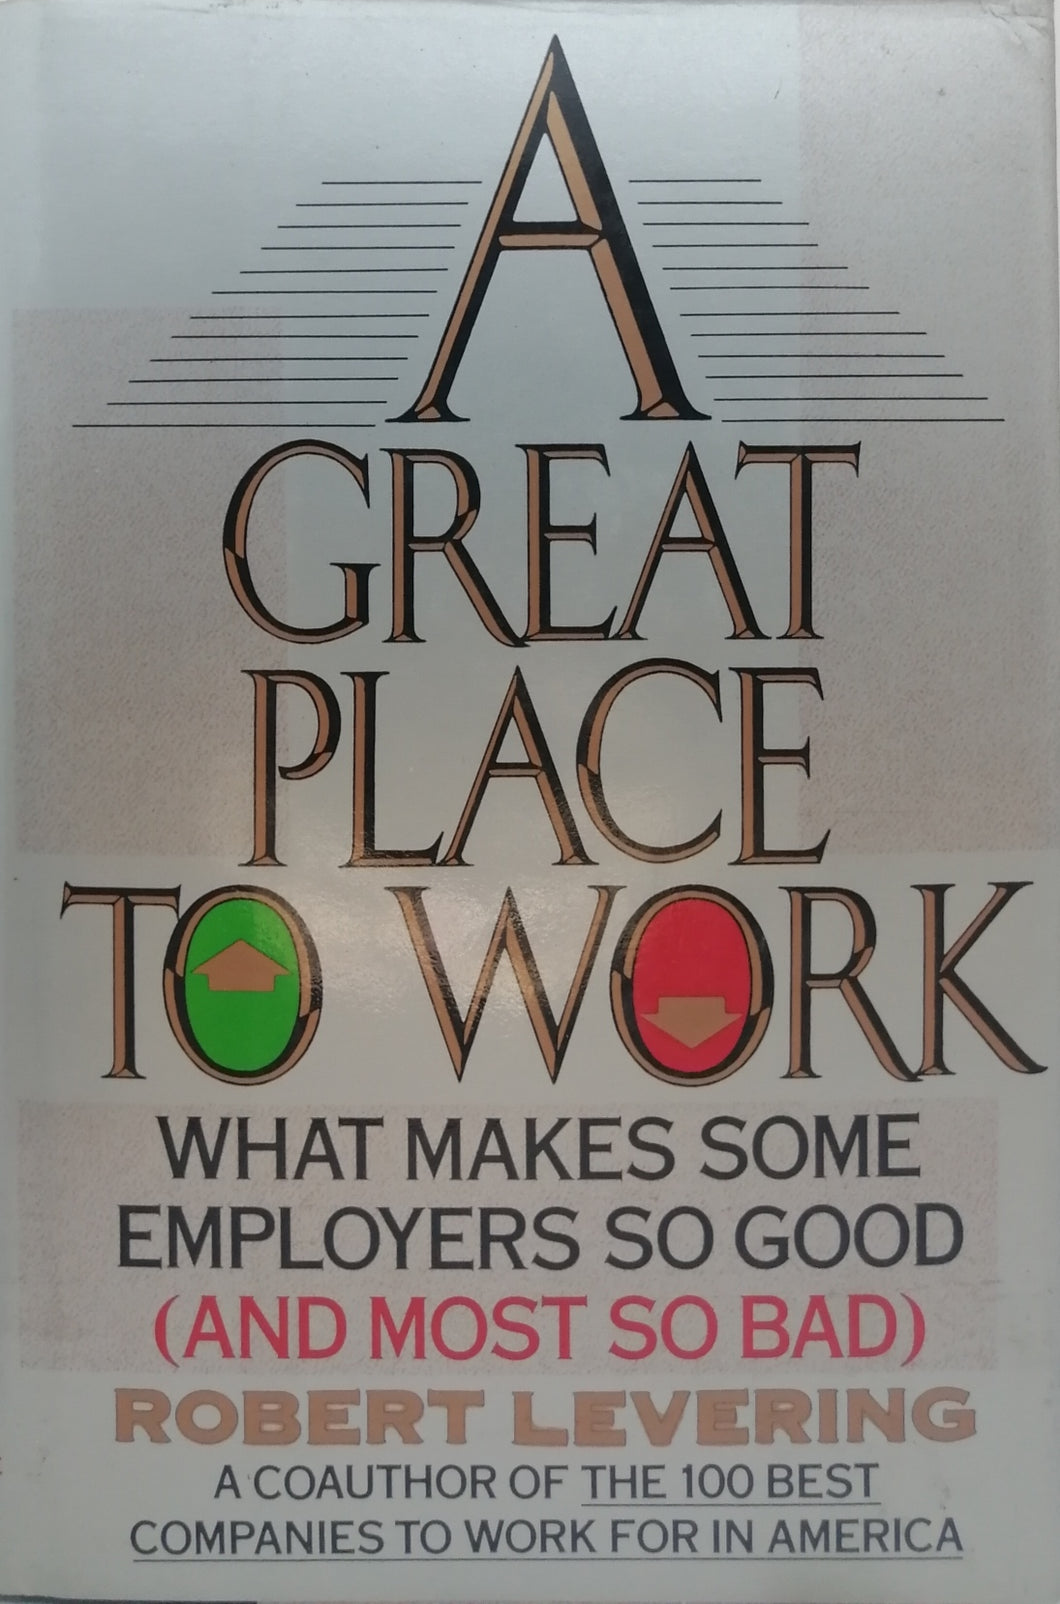 A great place to work by Robert Levering